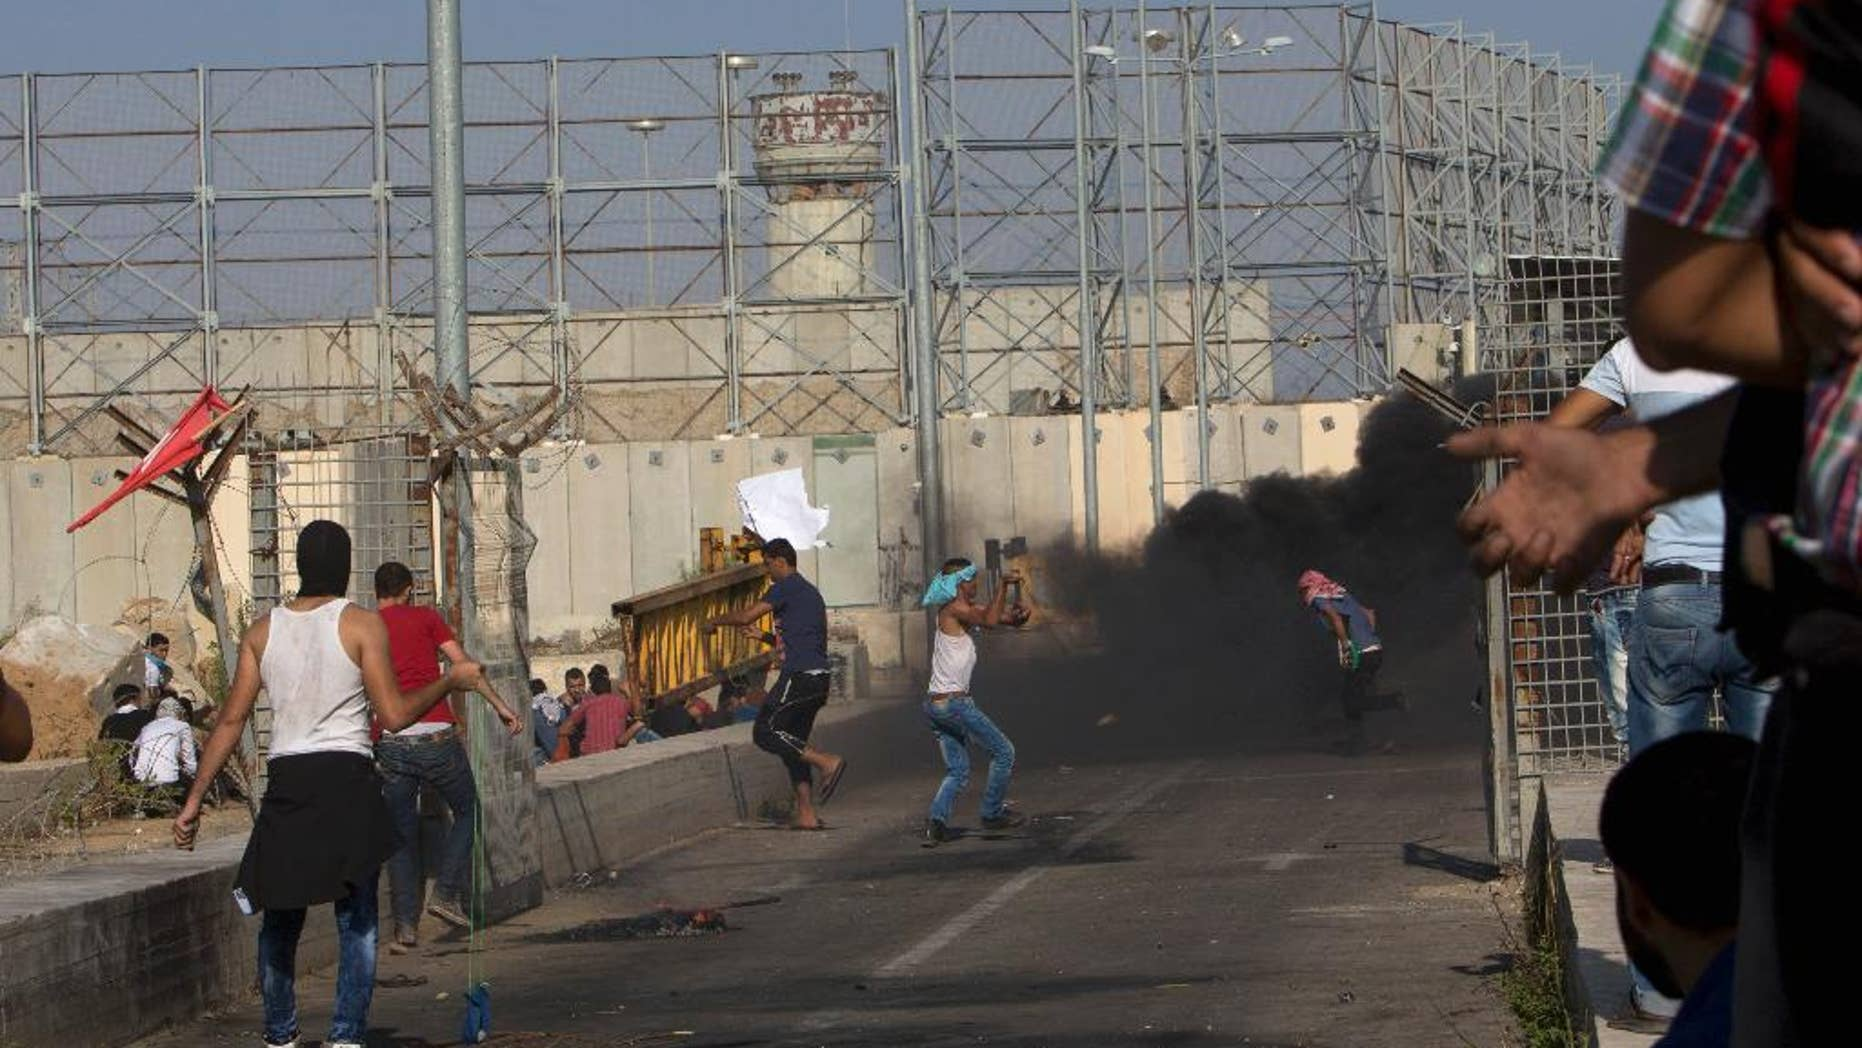 FILE - In this Oct. 16, 2015 file photo, Palestinian demonstrators hurl stones at Israeli soldiers during clashes at the entrance of Erez border crossing between the Gaza Strip and Israel, in the northern Gaza Strip. An Israeli advocacy group is reporting a sharp jump in the number of Palestinians from the Gaza Strip who have been summoned for questioning by Israeli security agents as a condition for leaving the blockaded territory. Gisha, which pushes for freedom of movement for Gaza's 1.8 million people, says more than 1,200 Gazans underwent interrogations during the first half of this year. (AP Photo/Adel Hana, File)